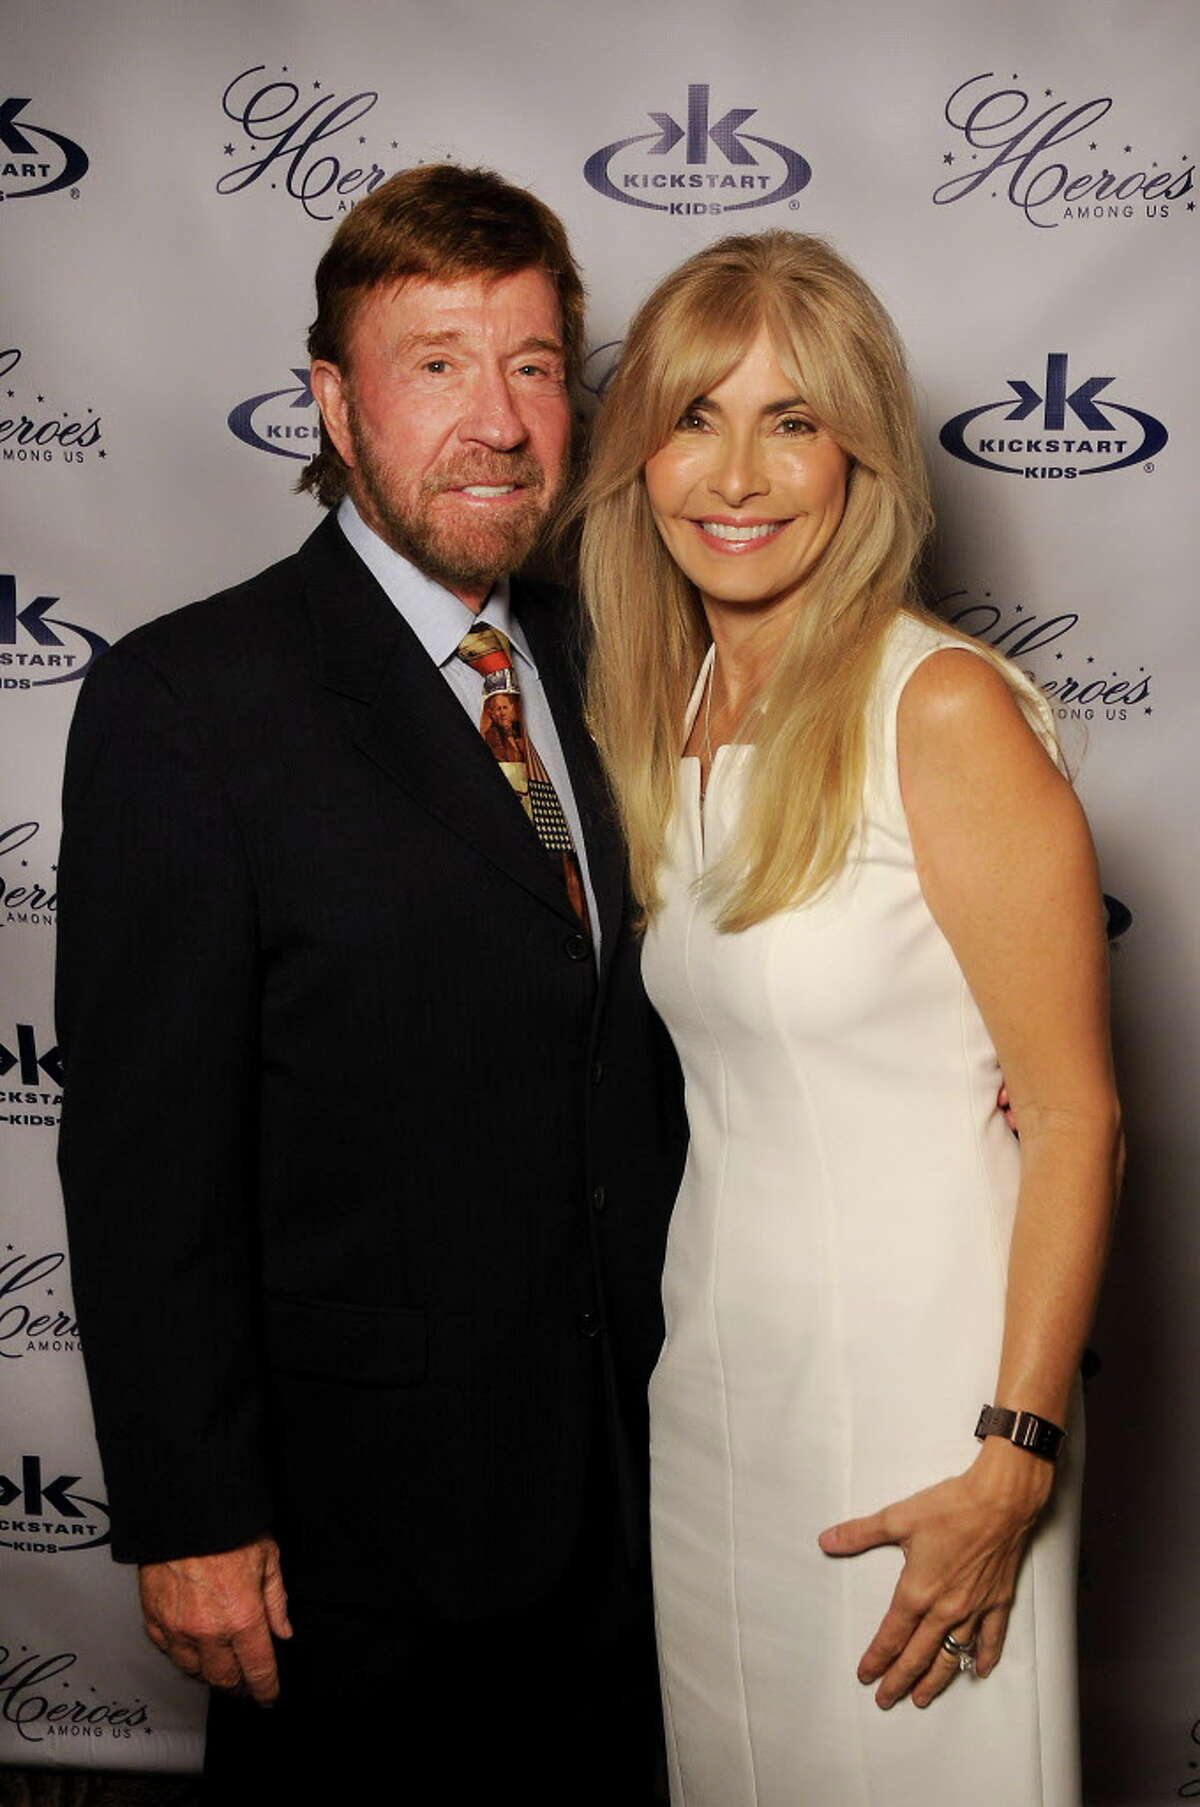 Gena and Chuck Norris at the 2016 Kickstart Kids Gala